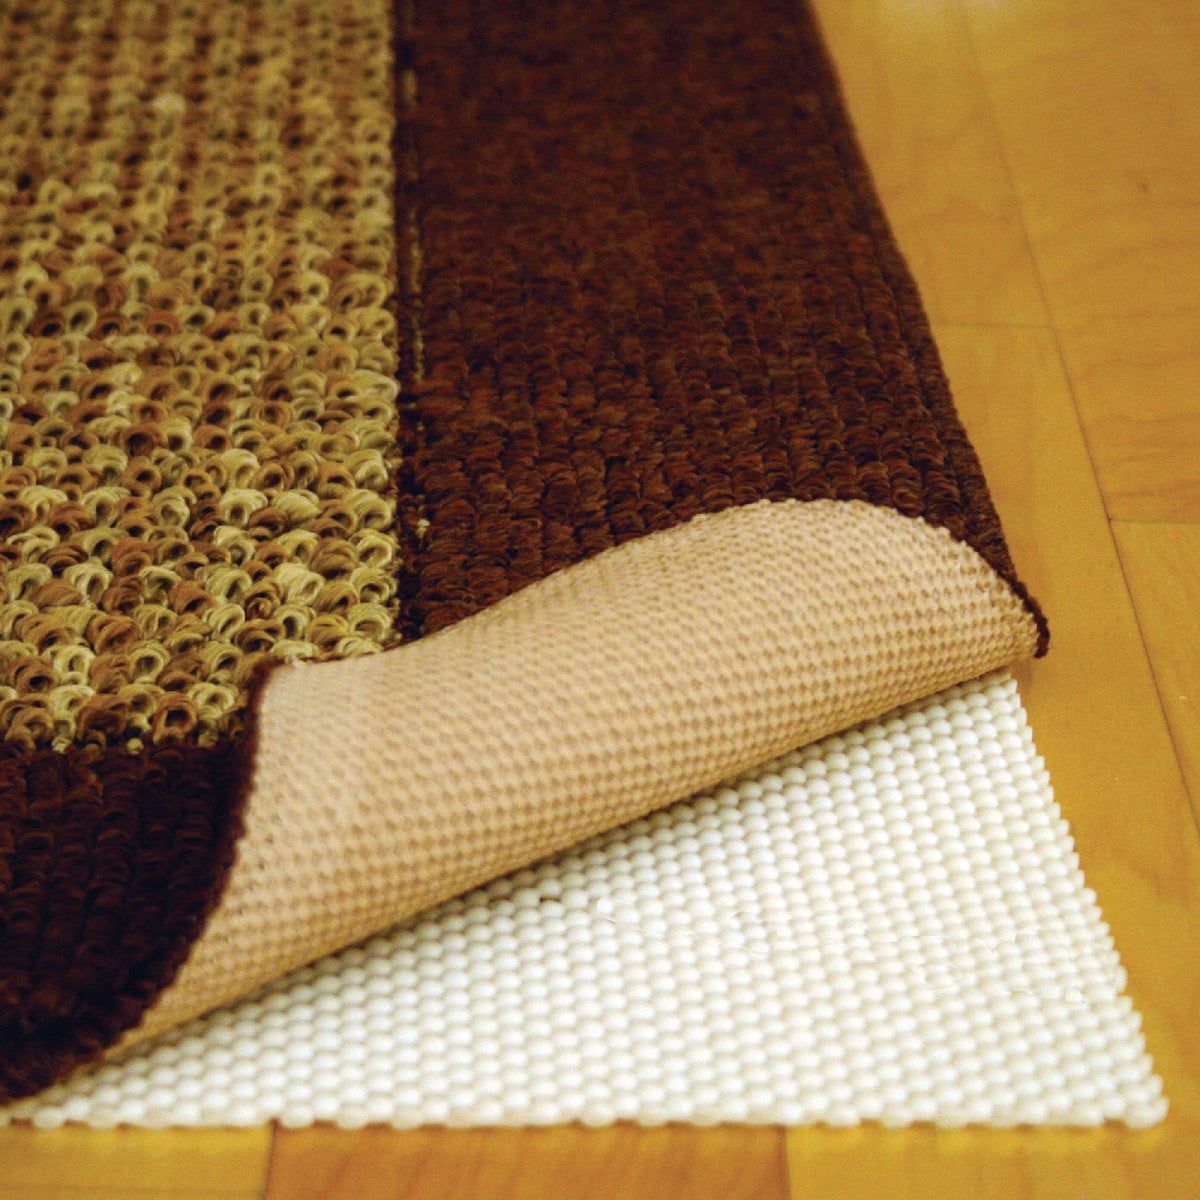 20X32 NONSLIP RUG PAD - RU004-999-020032 by Mohawk Home Products